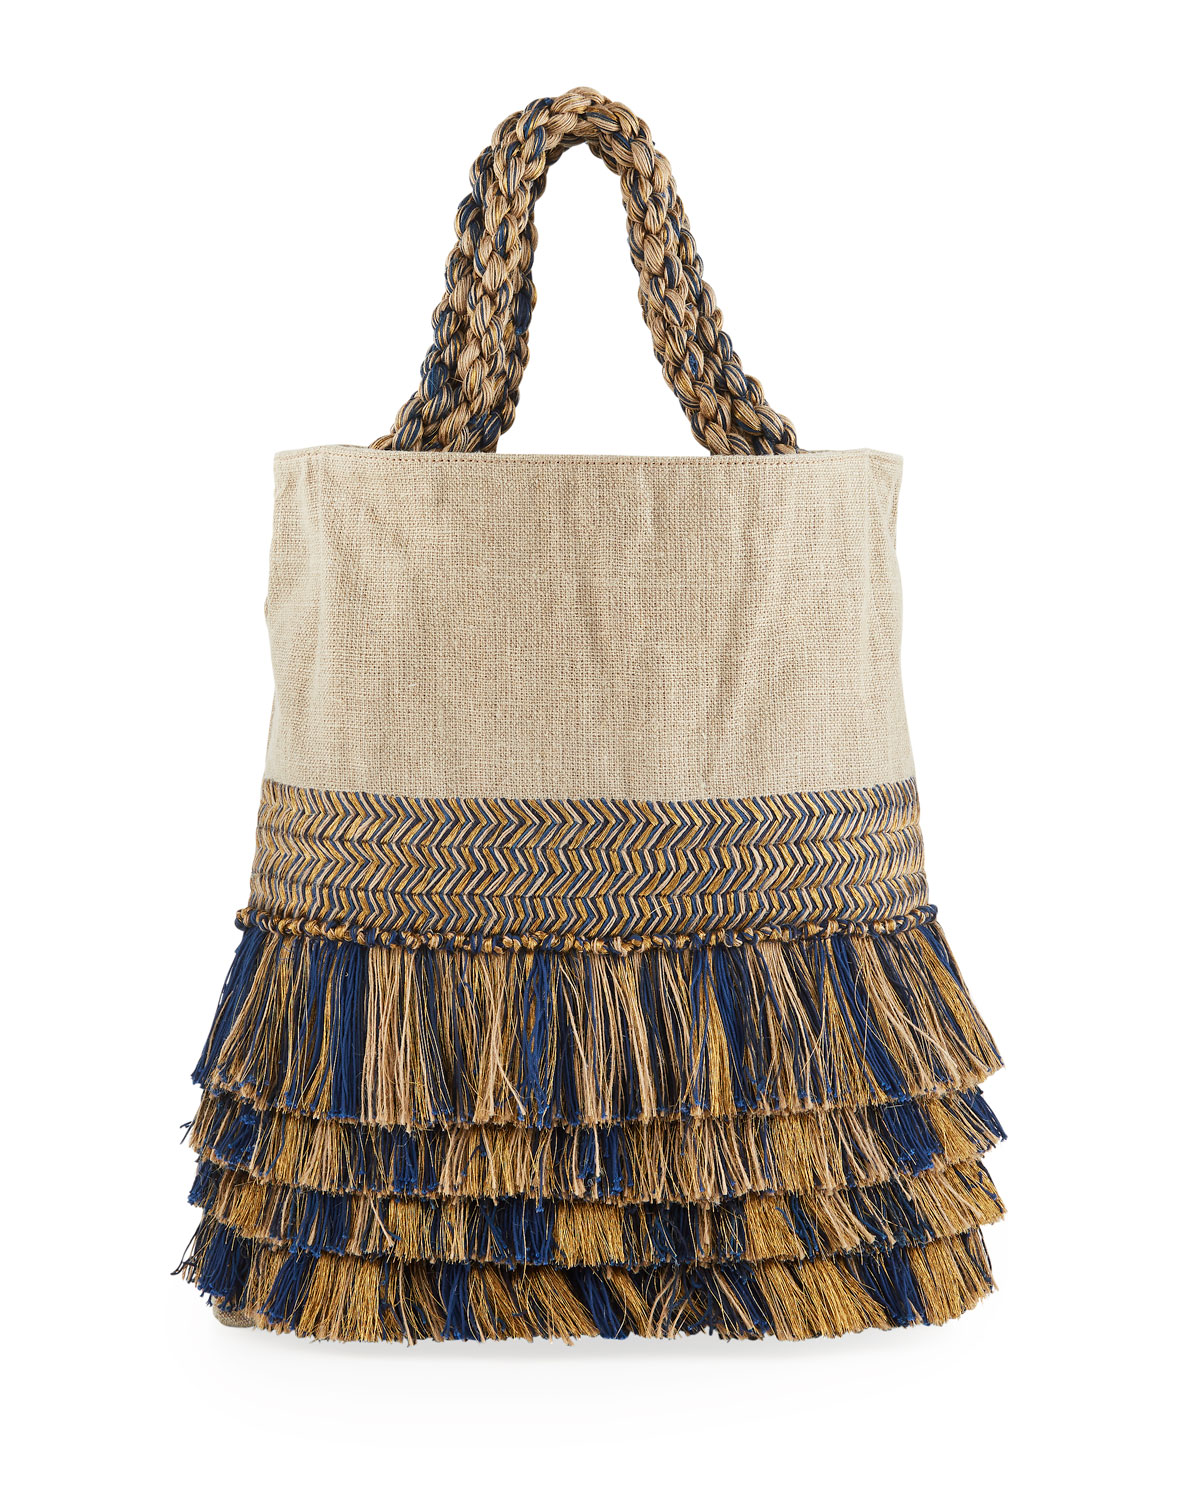 Pontania Folded Fringed Handbag